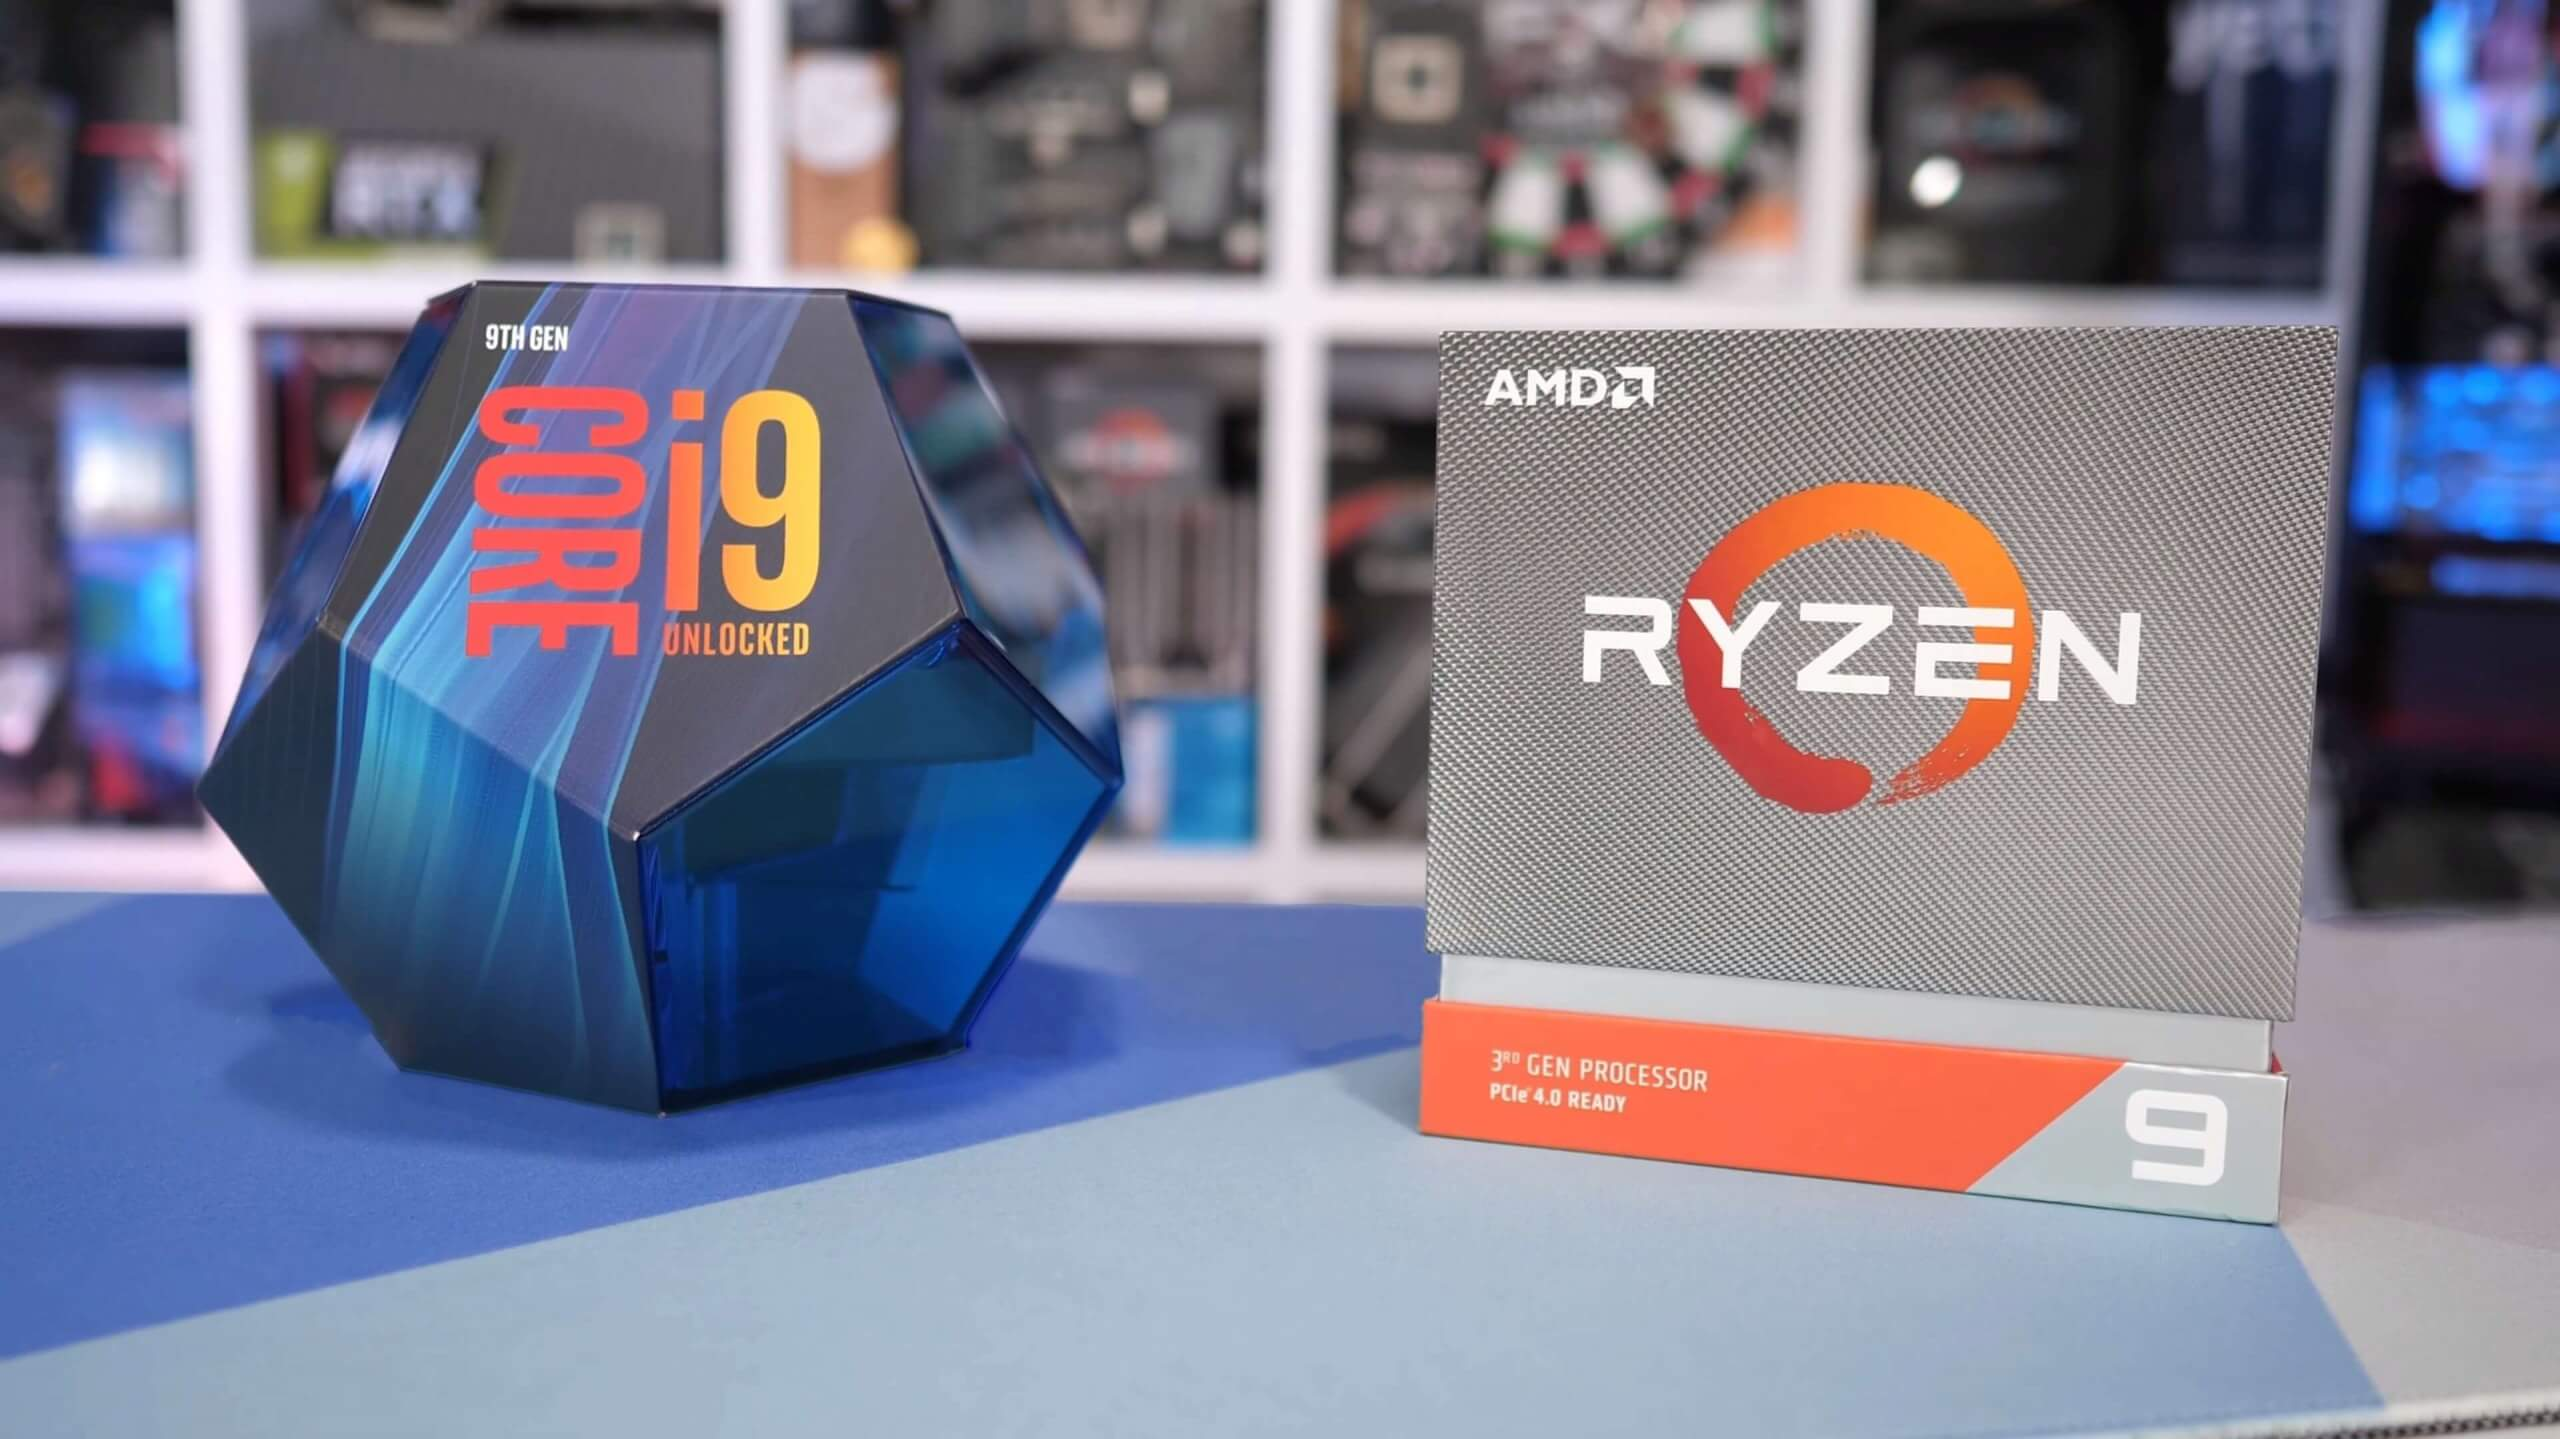 Best Single Core Performance 2019 UserBenchmark offers explanation for changes to CPU score weights